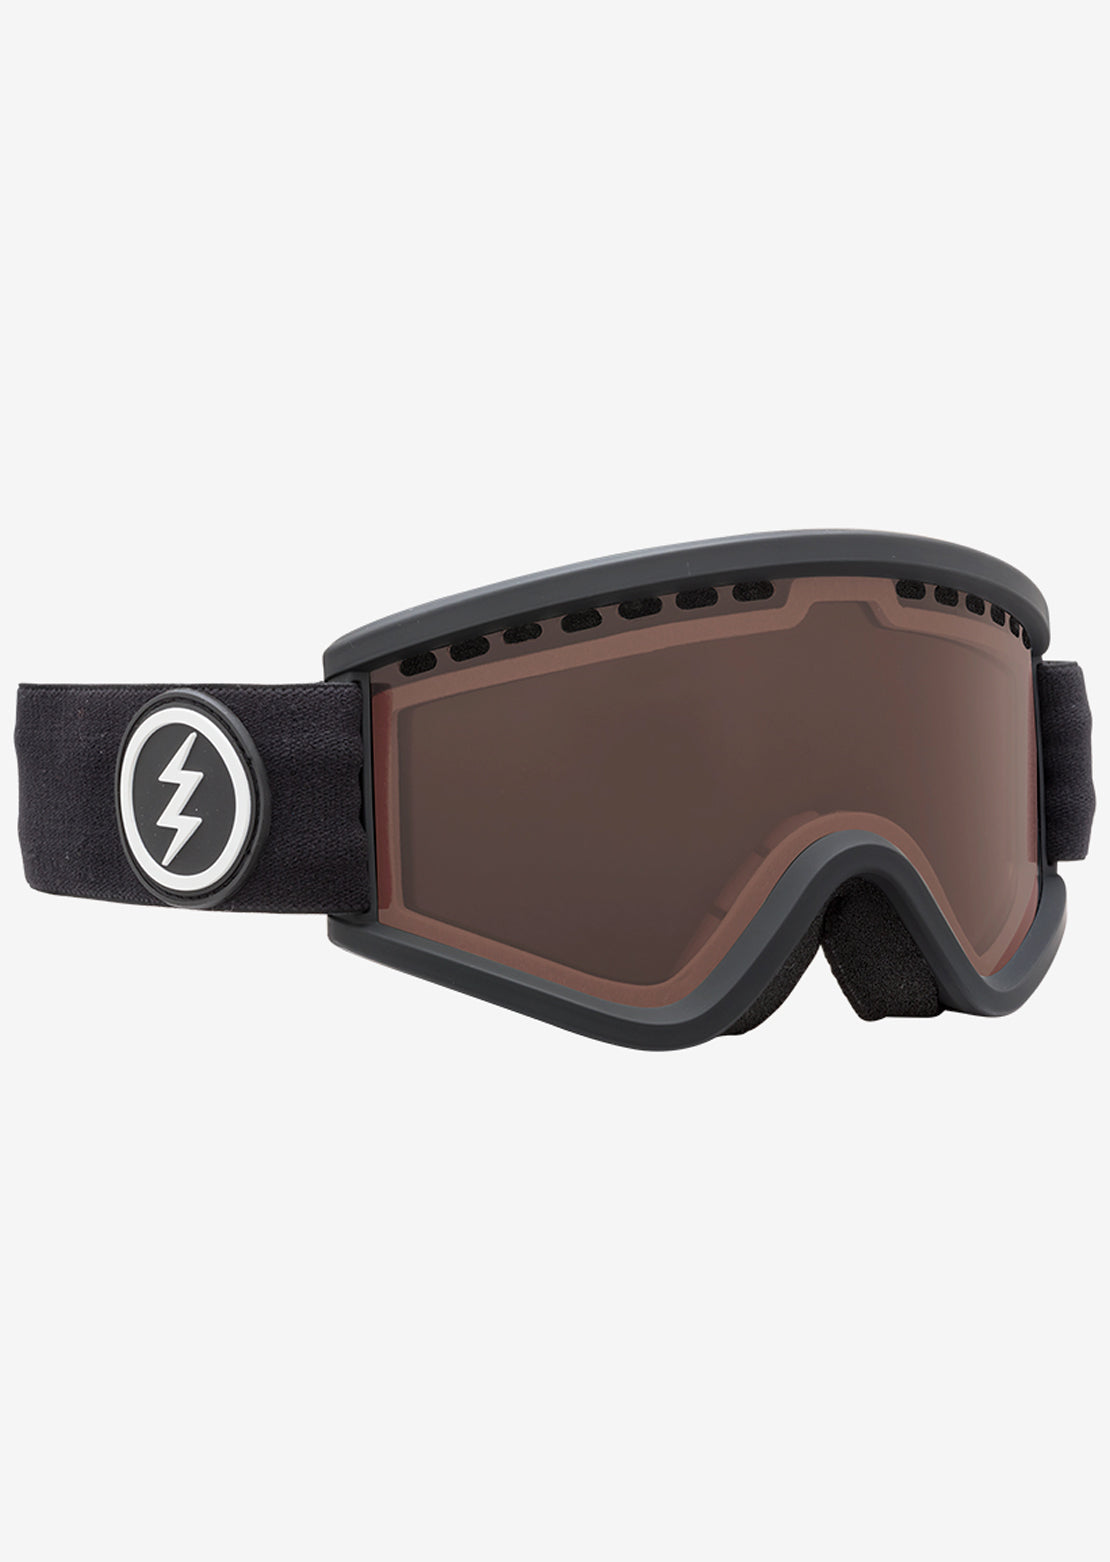 Electric Junior EGV.K Snow Goggles Matte Black/Brose